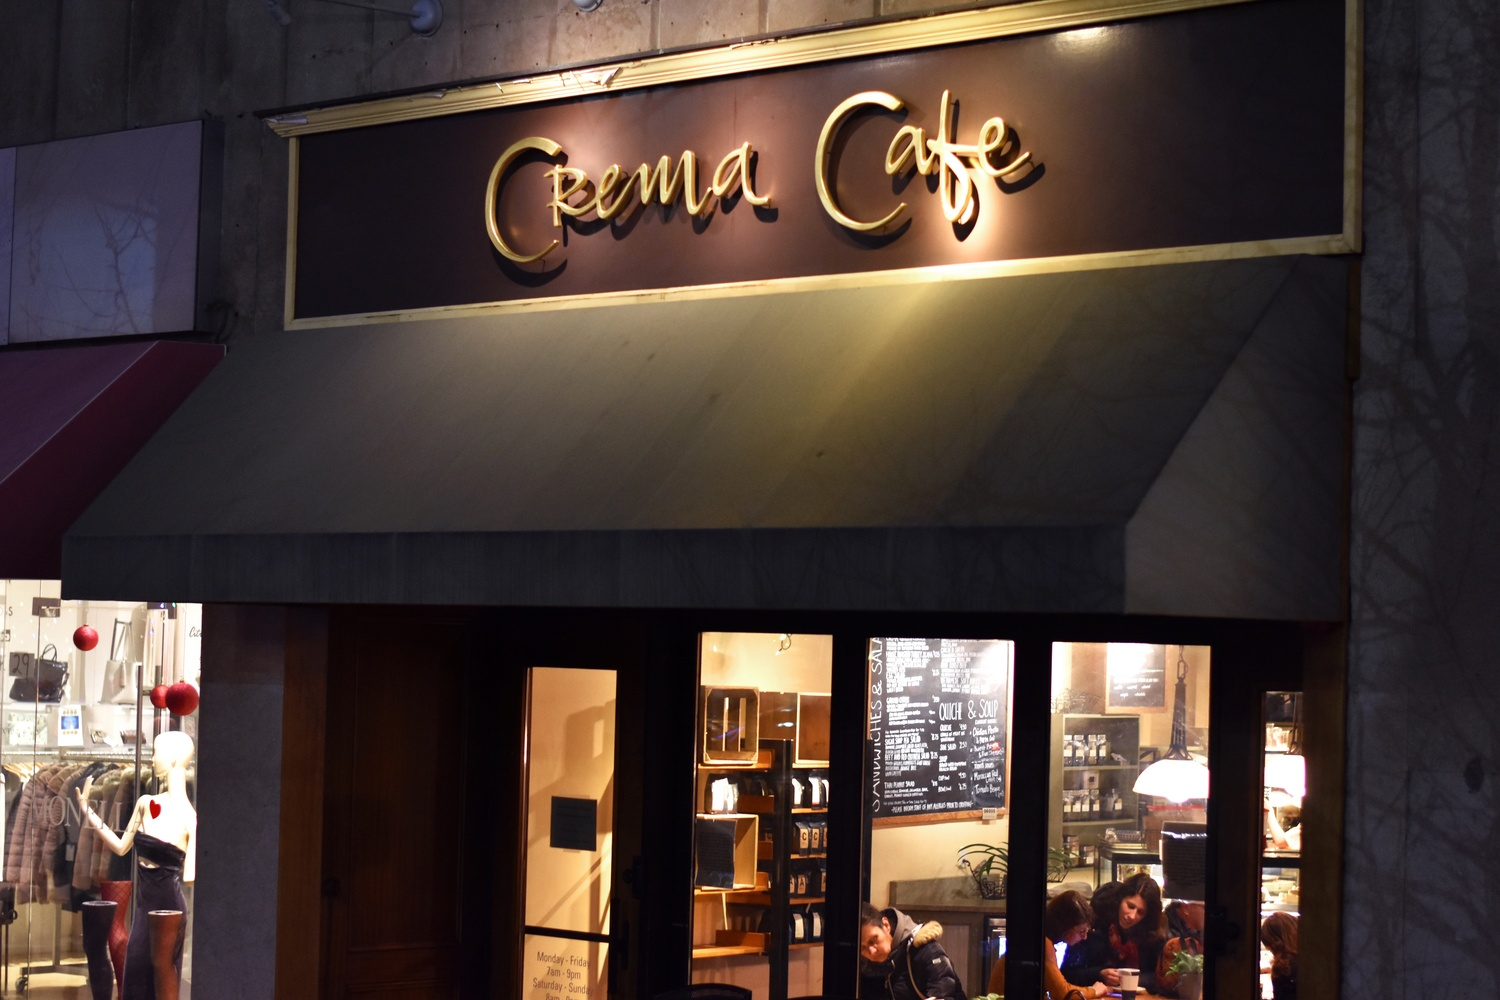 Crema cafe in Harvard Square is closing before the end of the year.